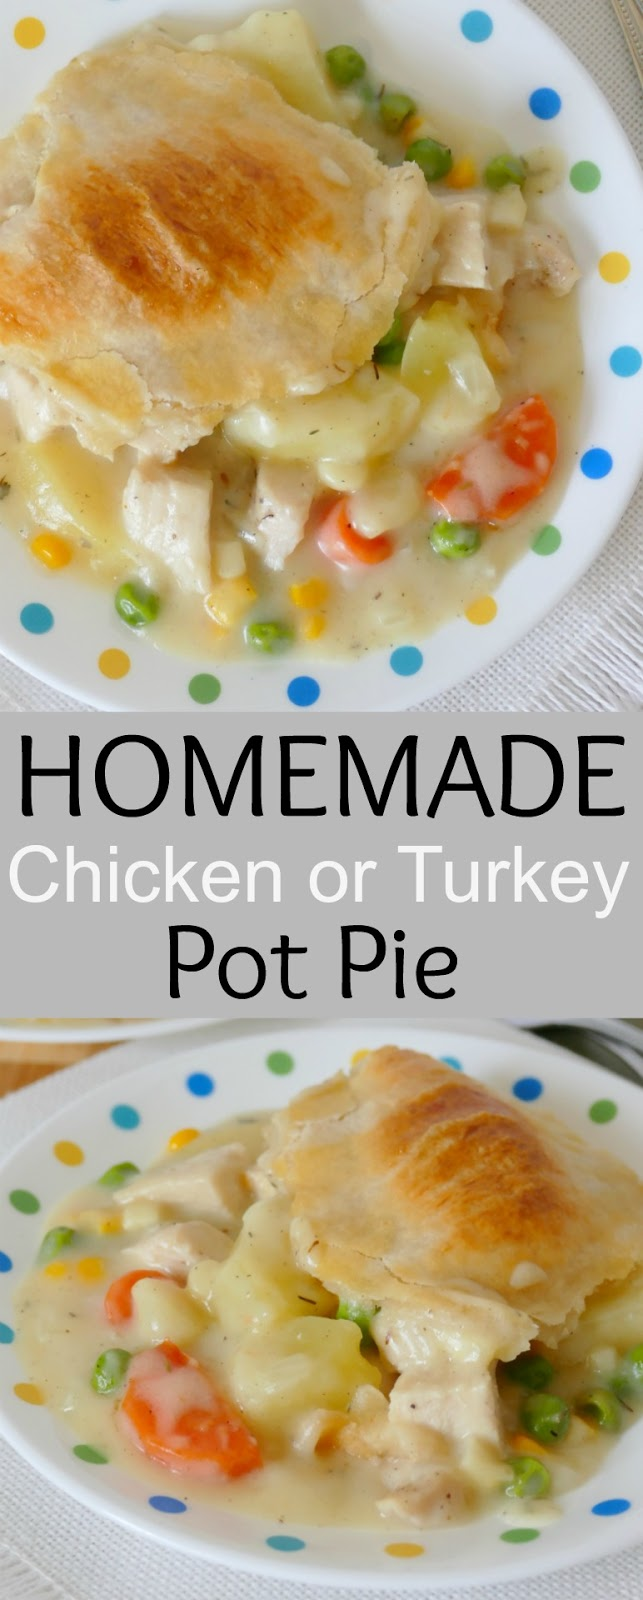 Photo of Homemade Chicken or Turkey Pot Pie Recipe